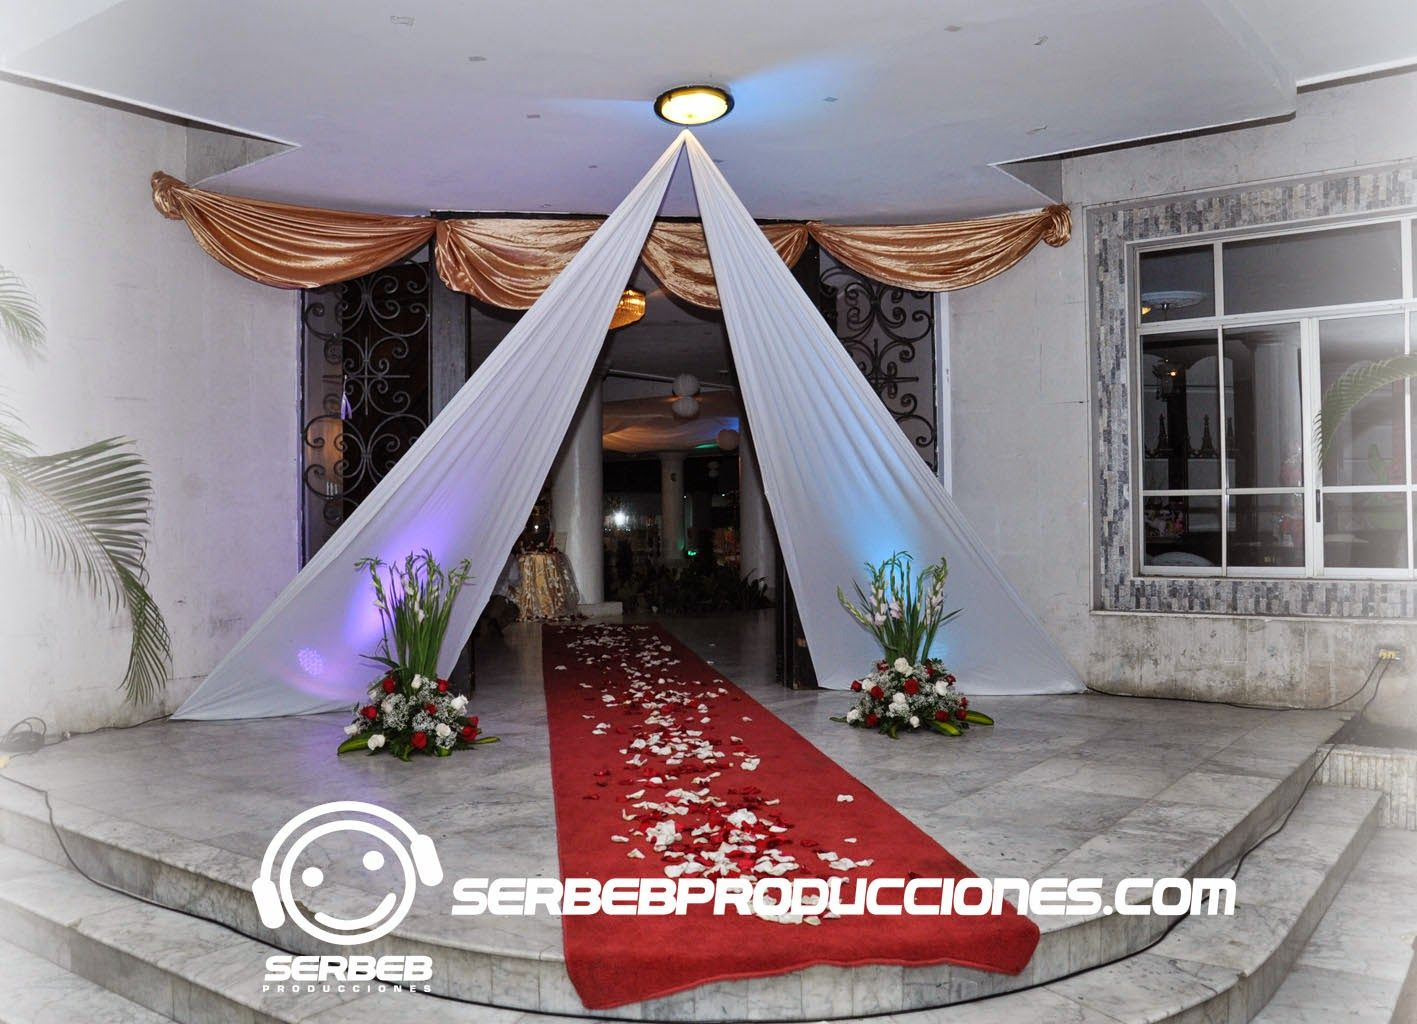 Decoracion de salon de bodas 2015 buscar con google for Decoracion bodas